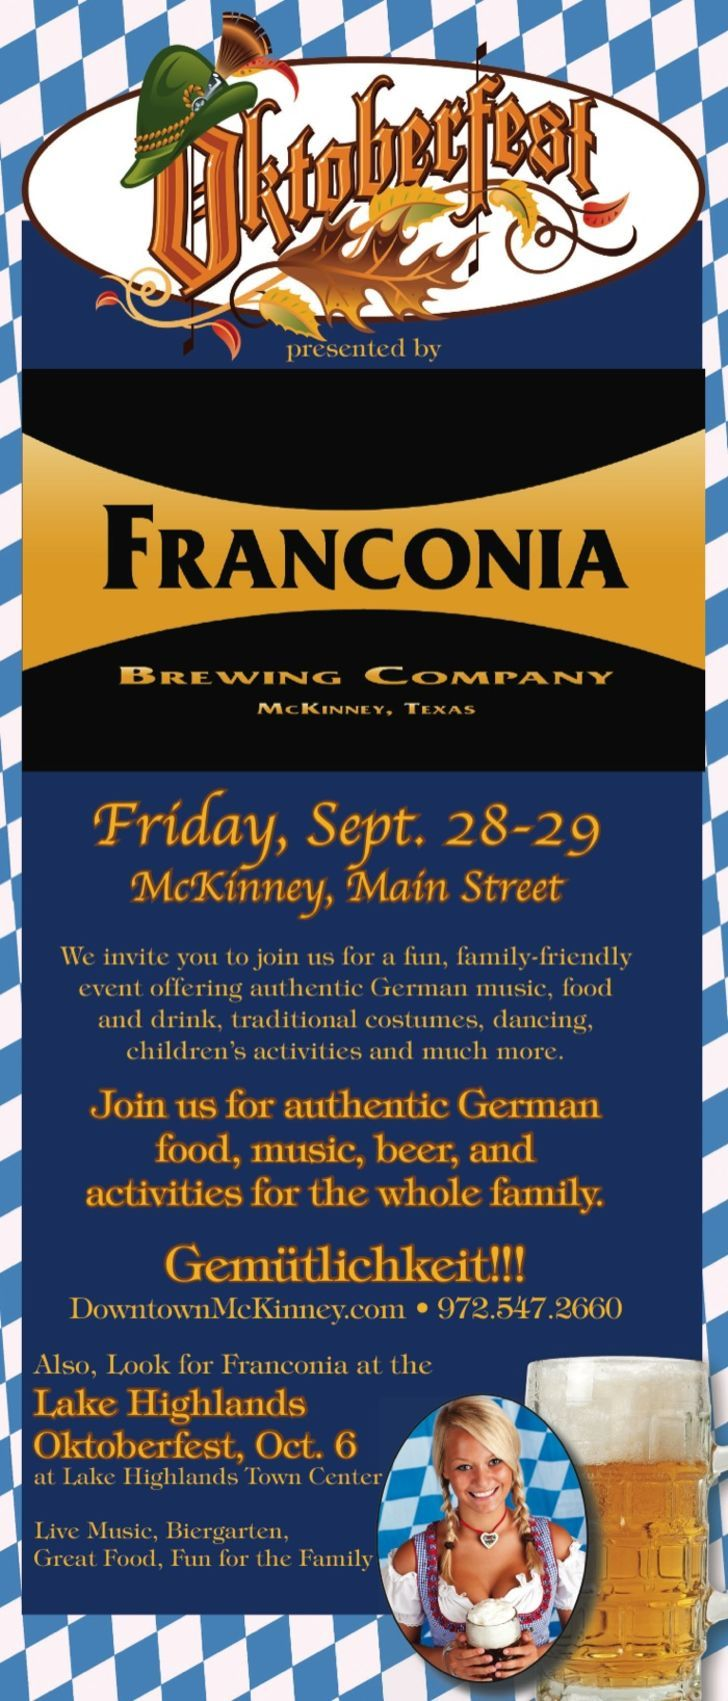 Franconia Brewing Company